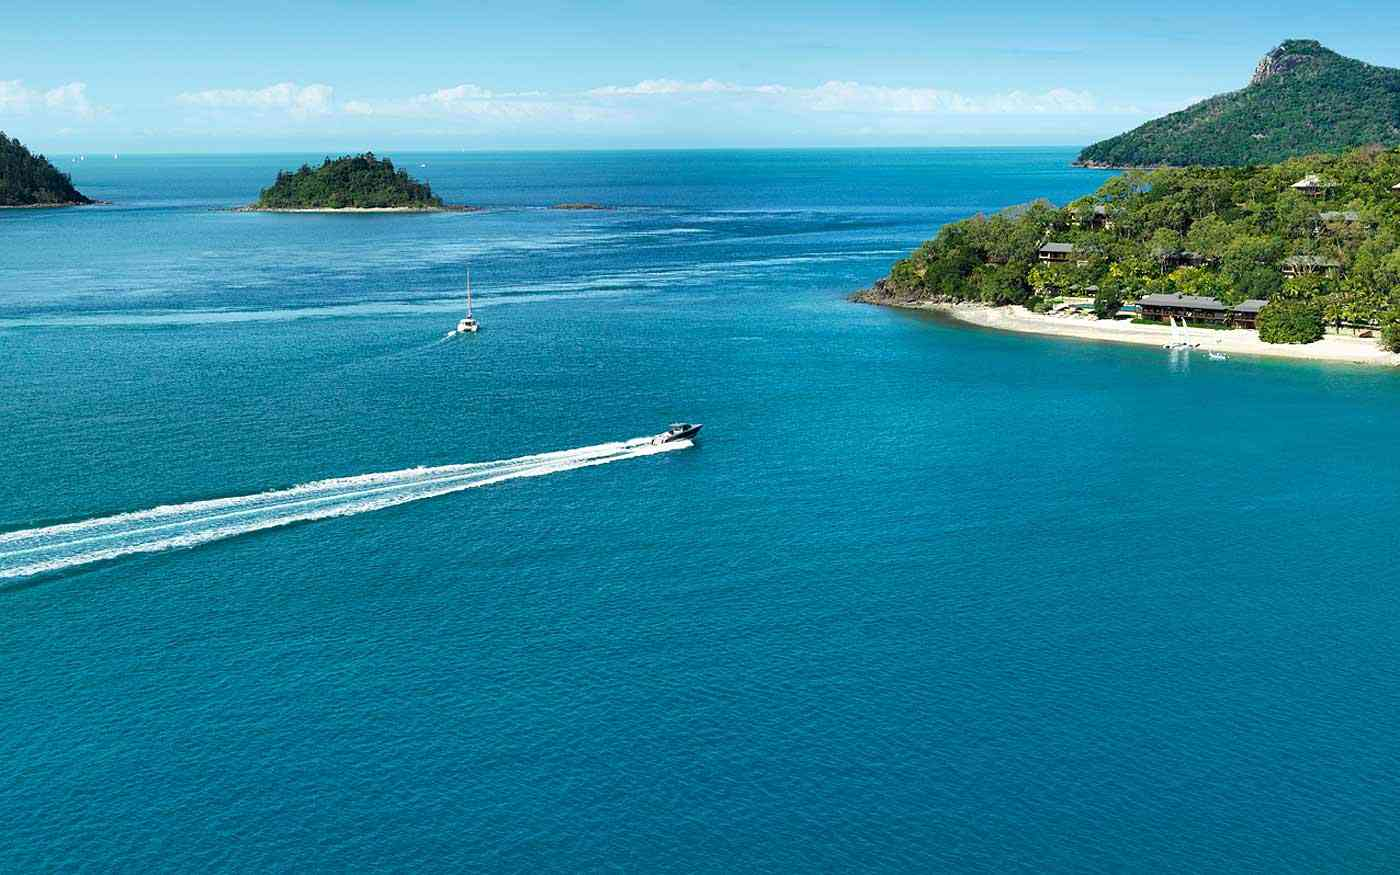 Qualia Resort Surroundings